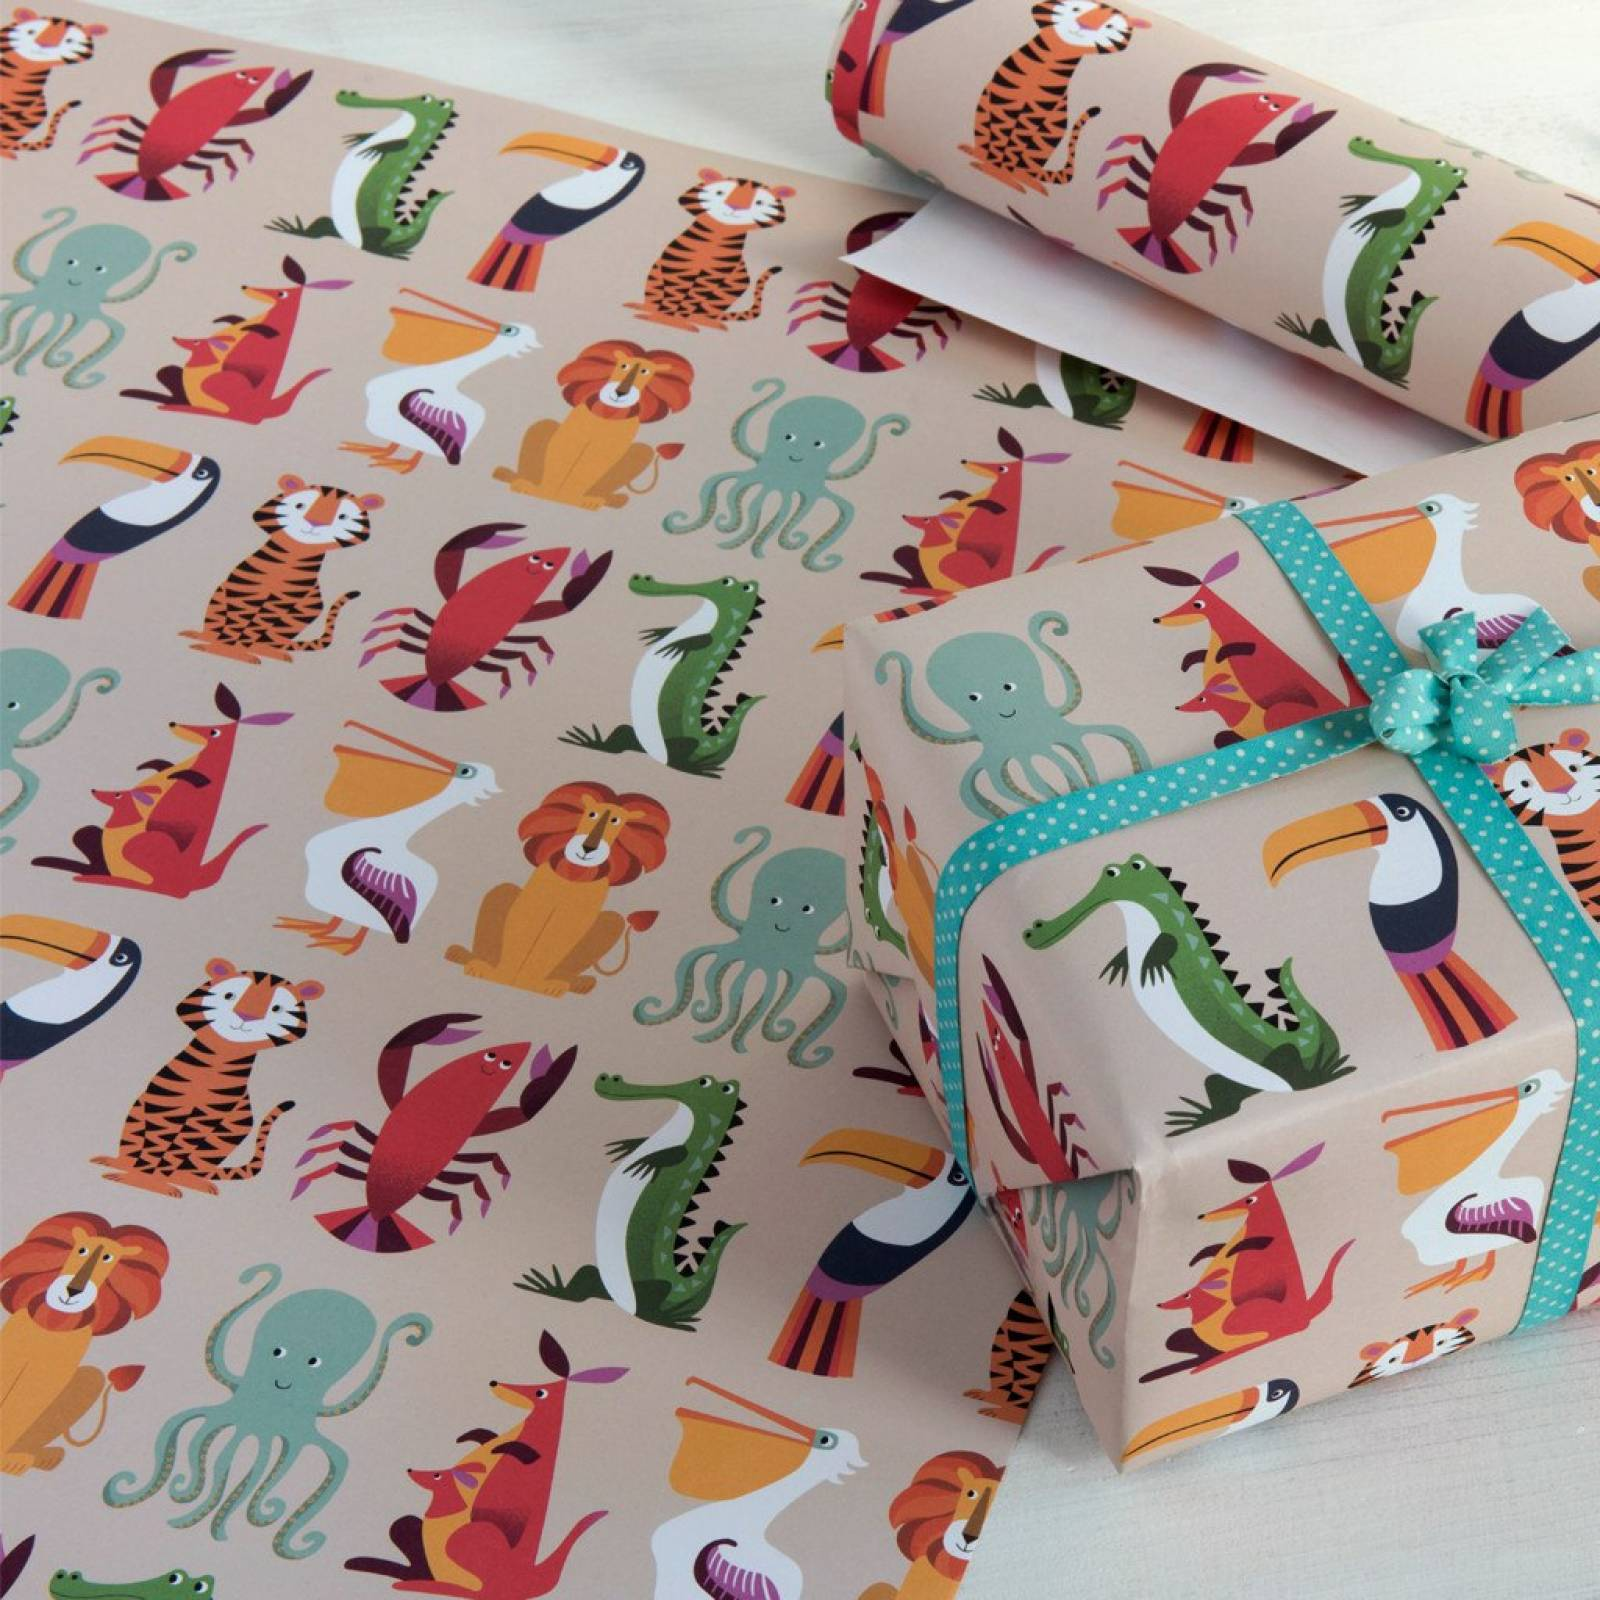 Giftwrapping for 1 Gift thumbnails